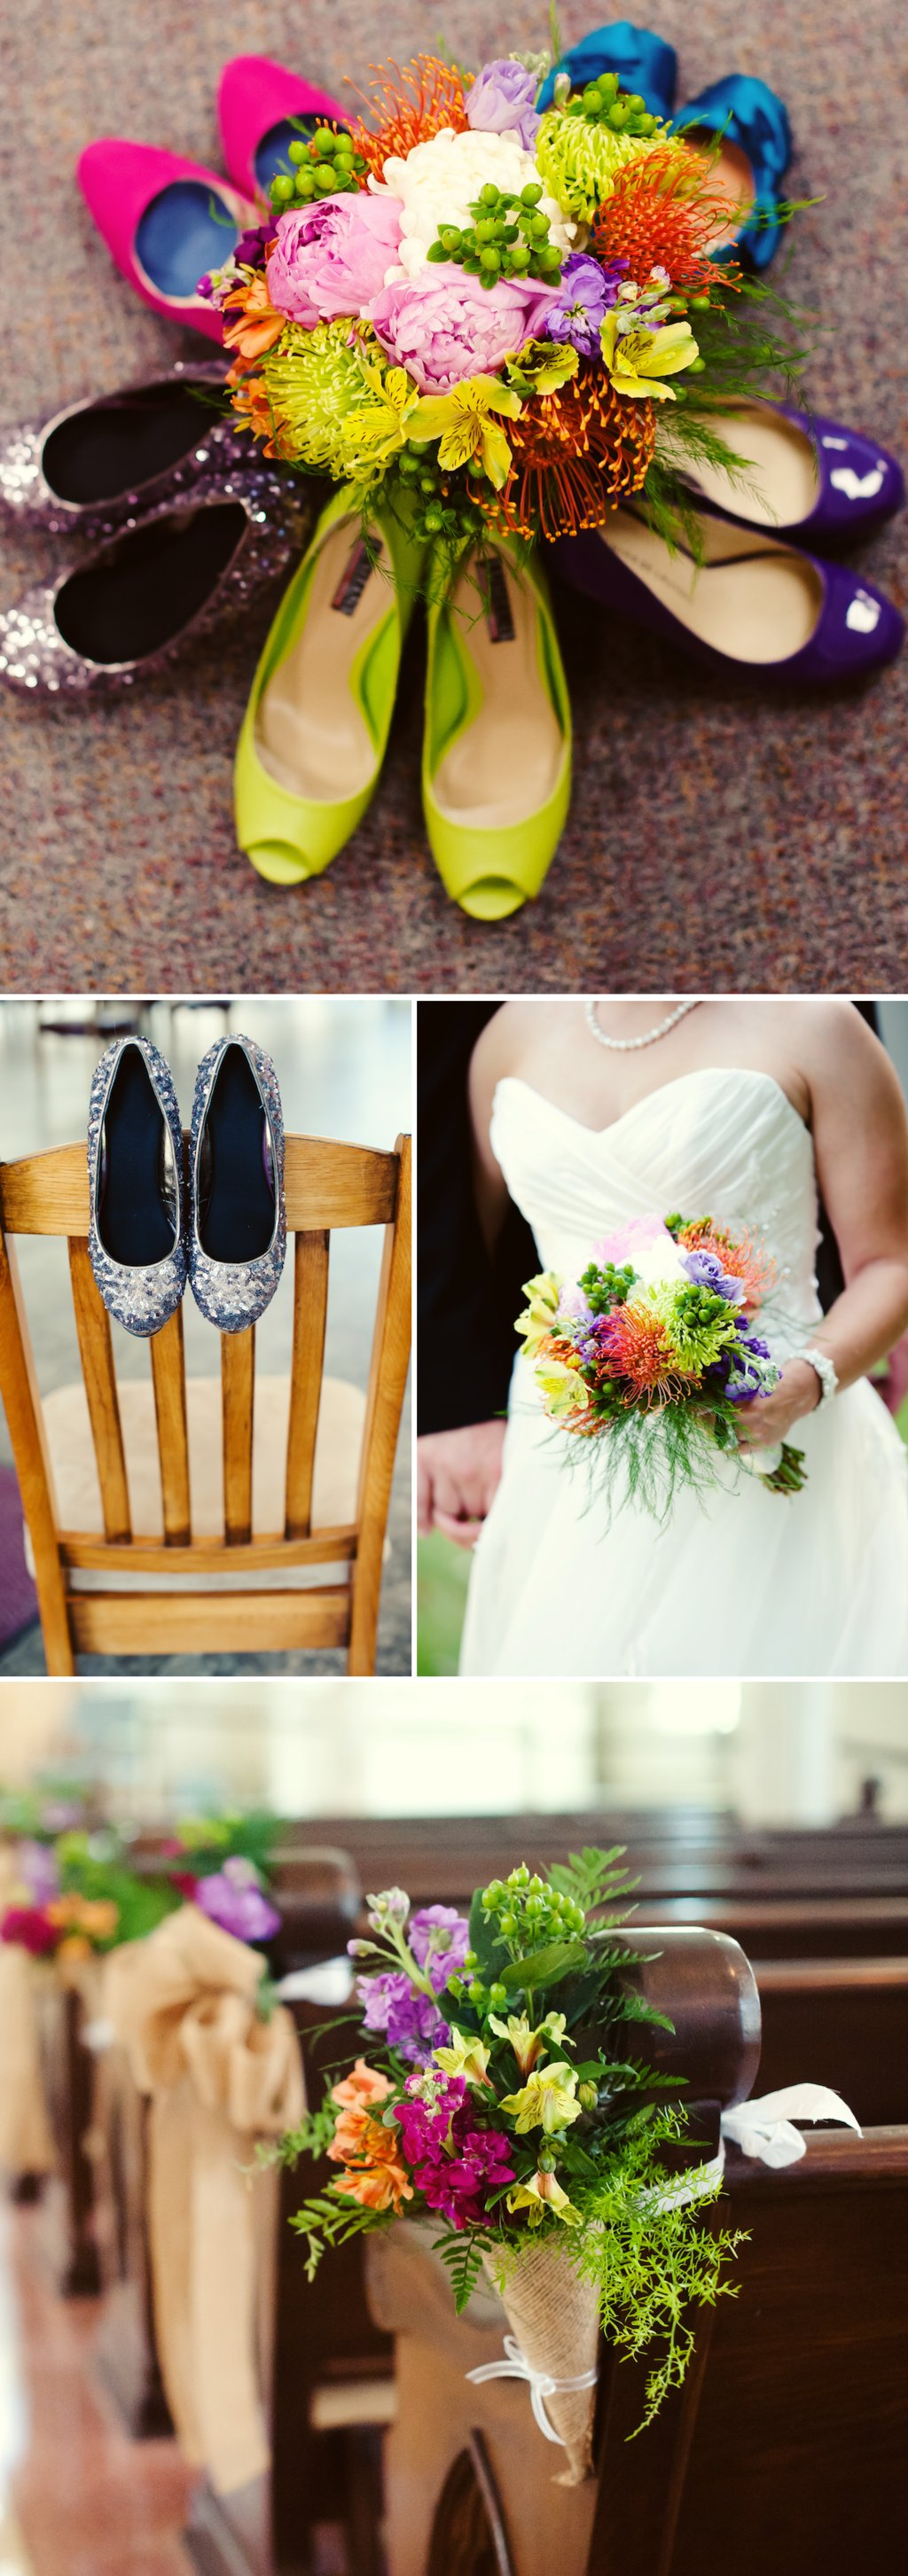 Classic-summer-wedding-colorful-flowers-traditional-venue.full